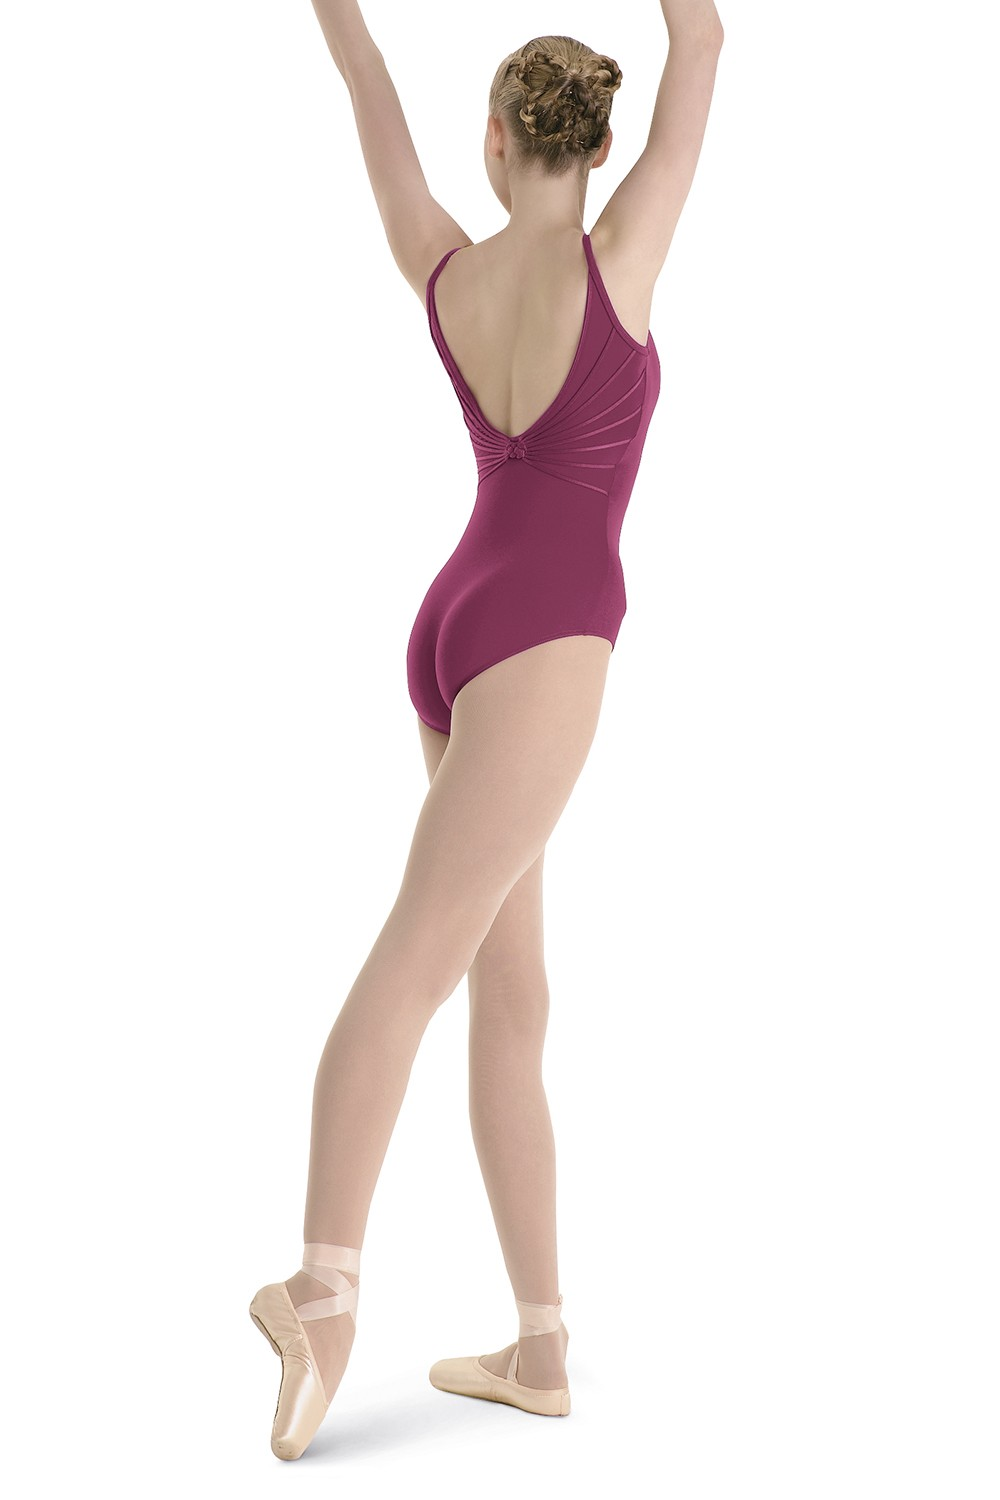 Deep V Knot Back Leo Women's Dance Leotards